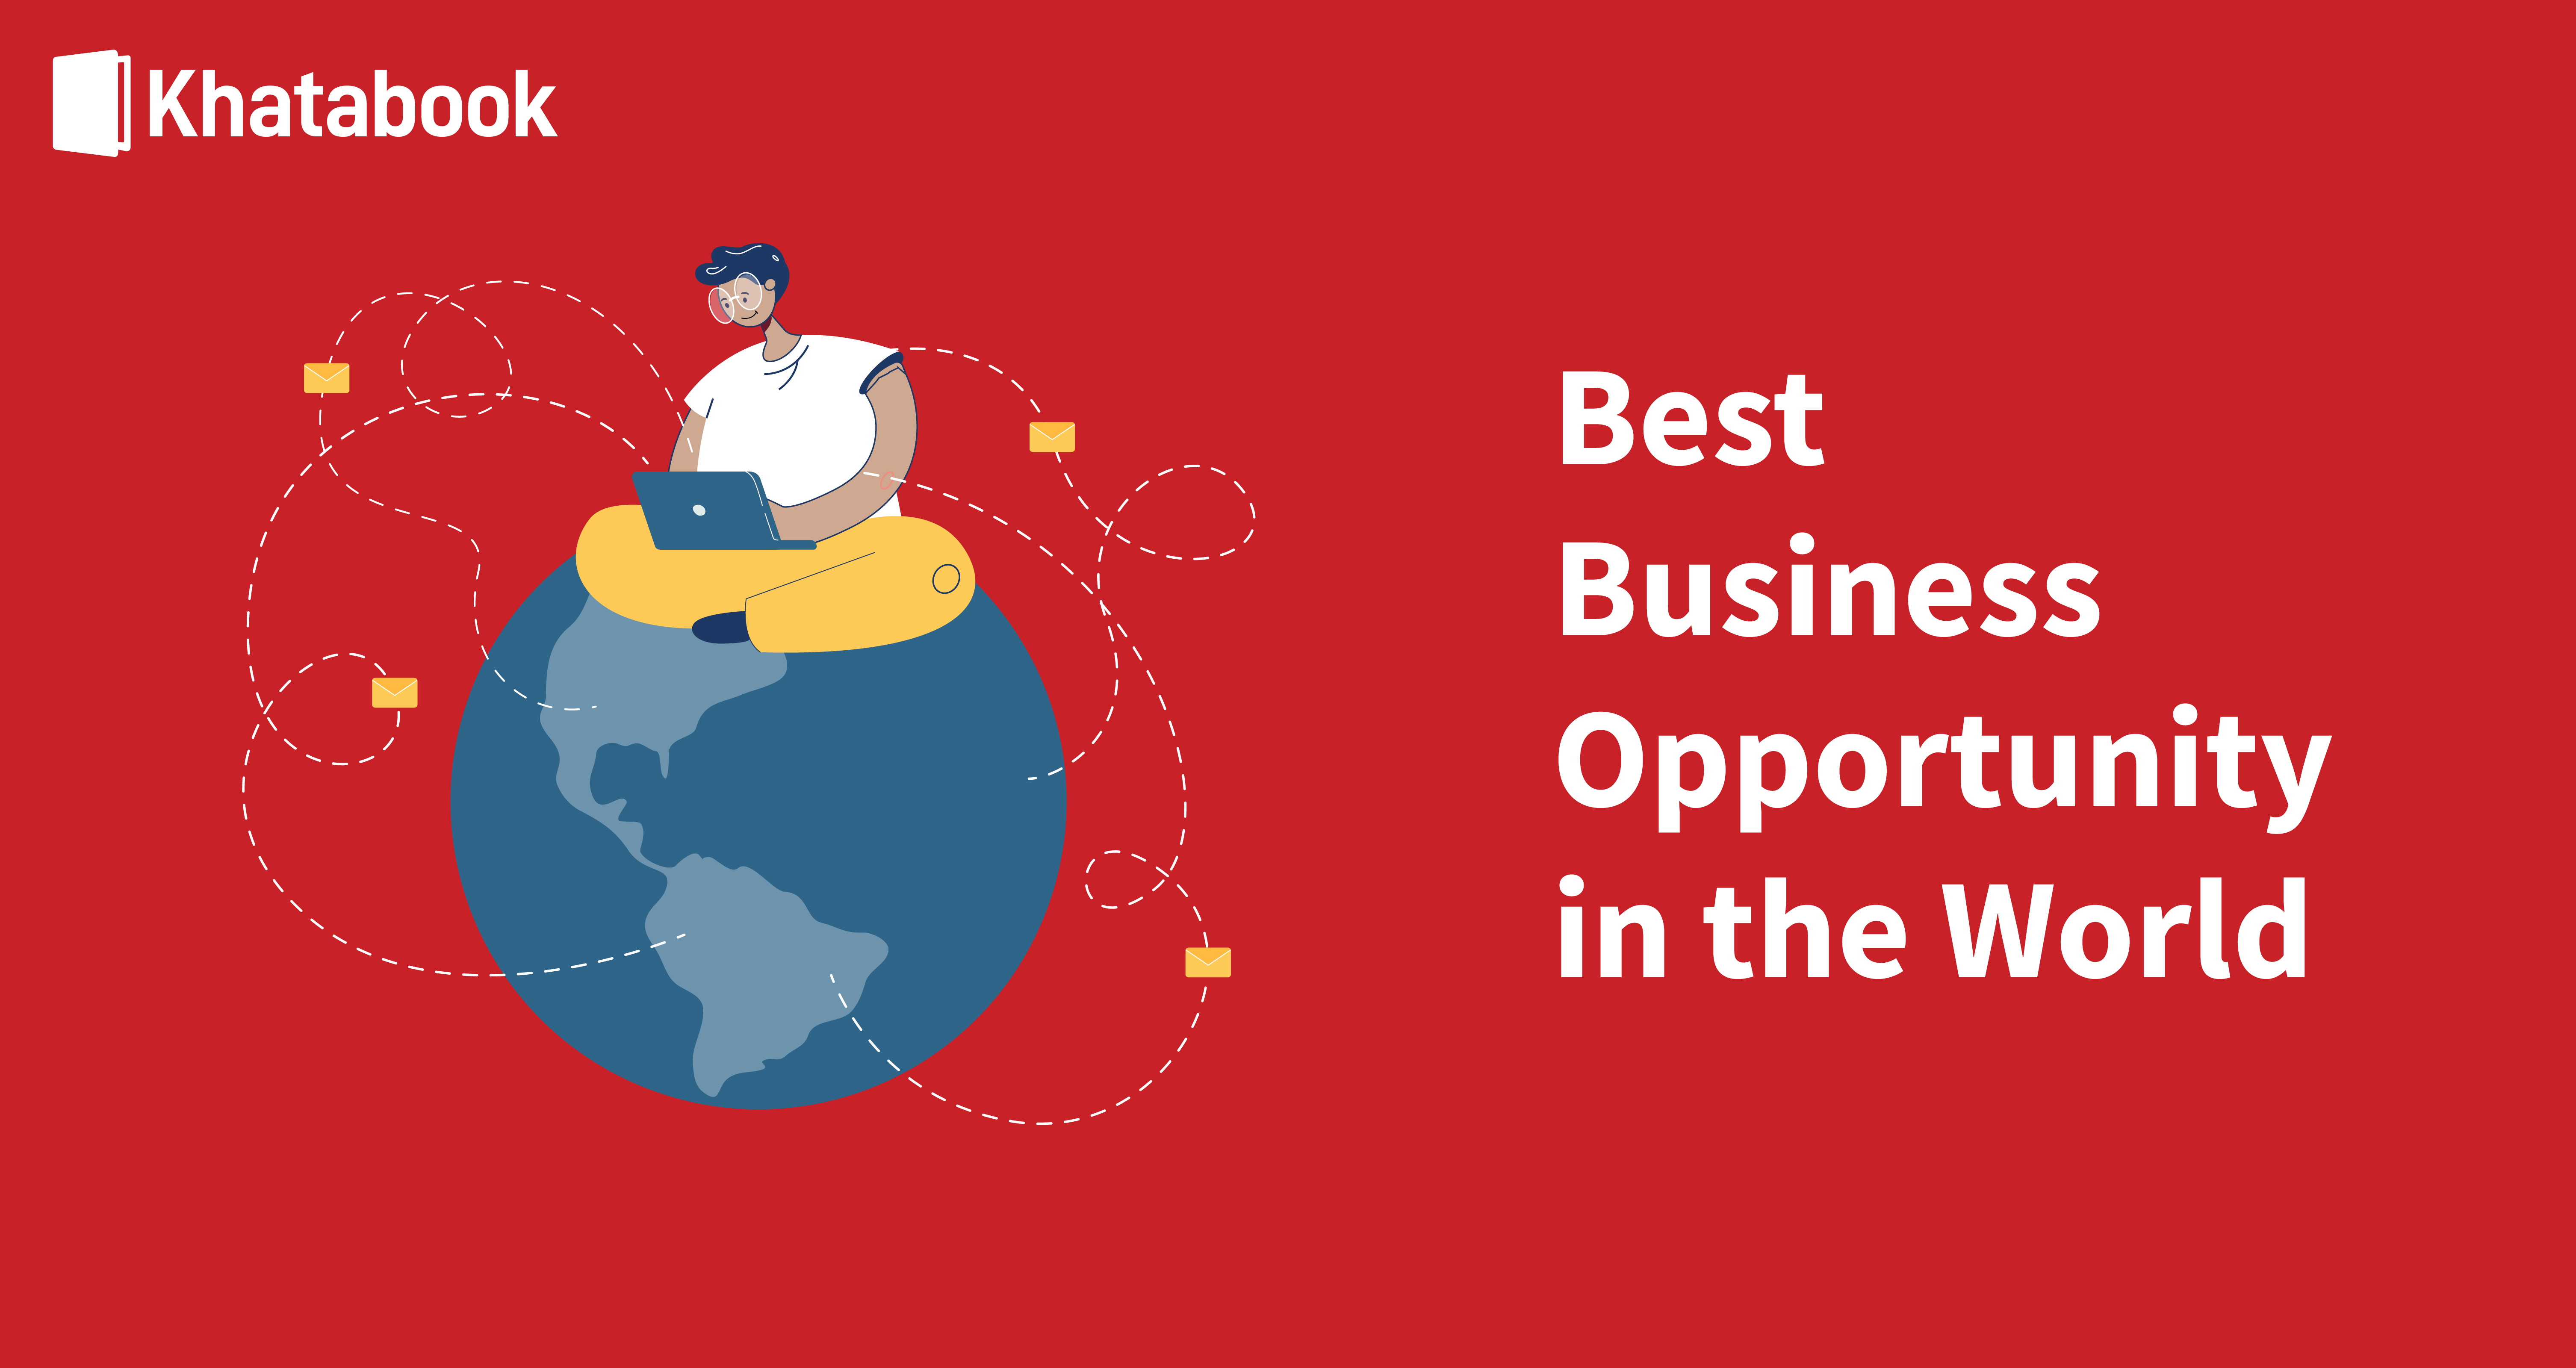 Know About The Best Business Opportunities in the World